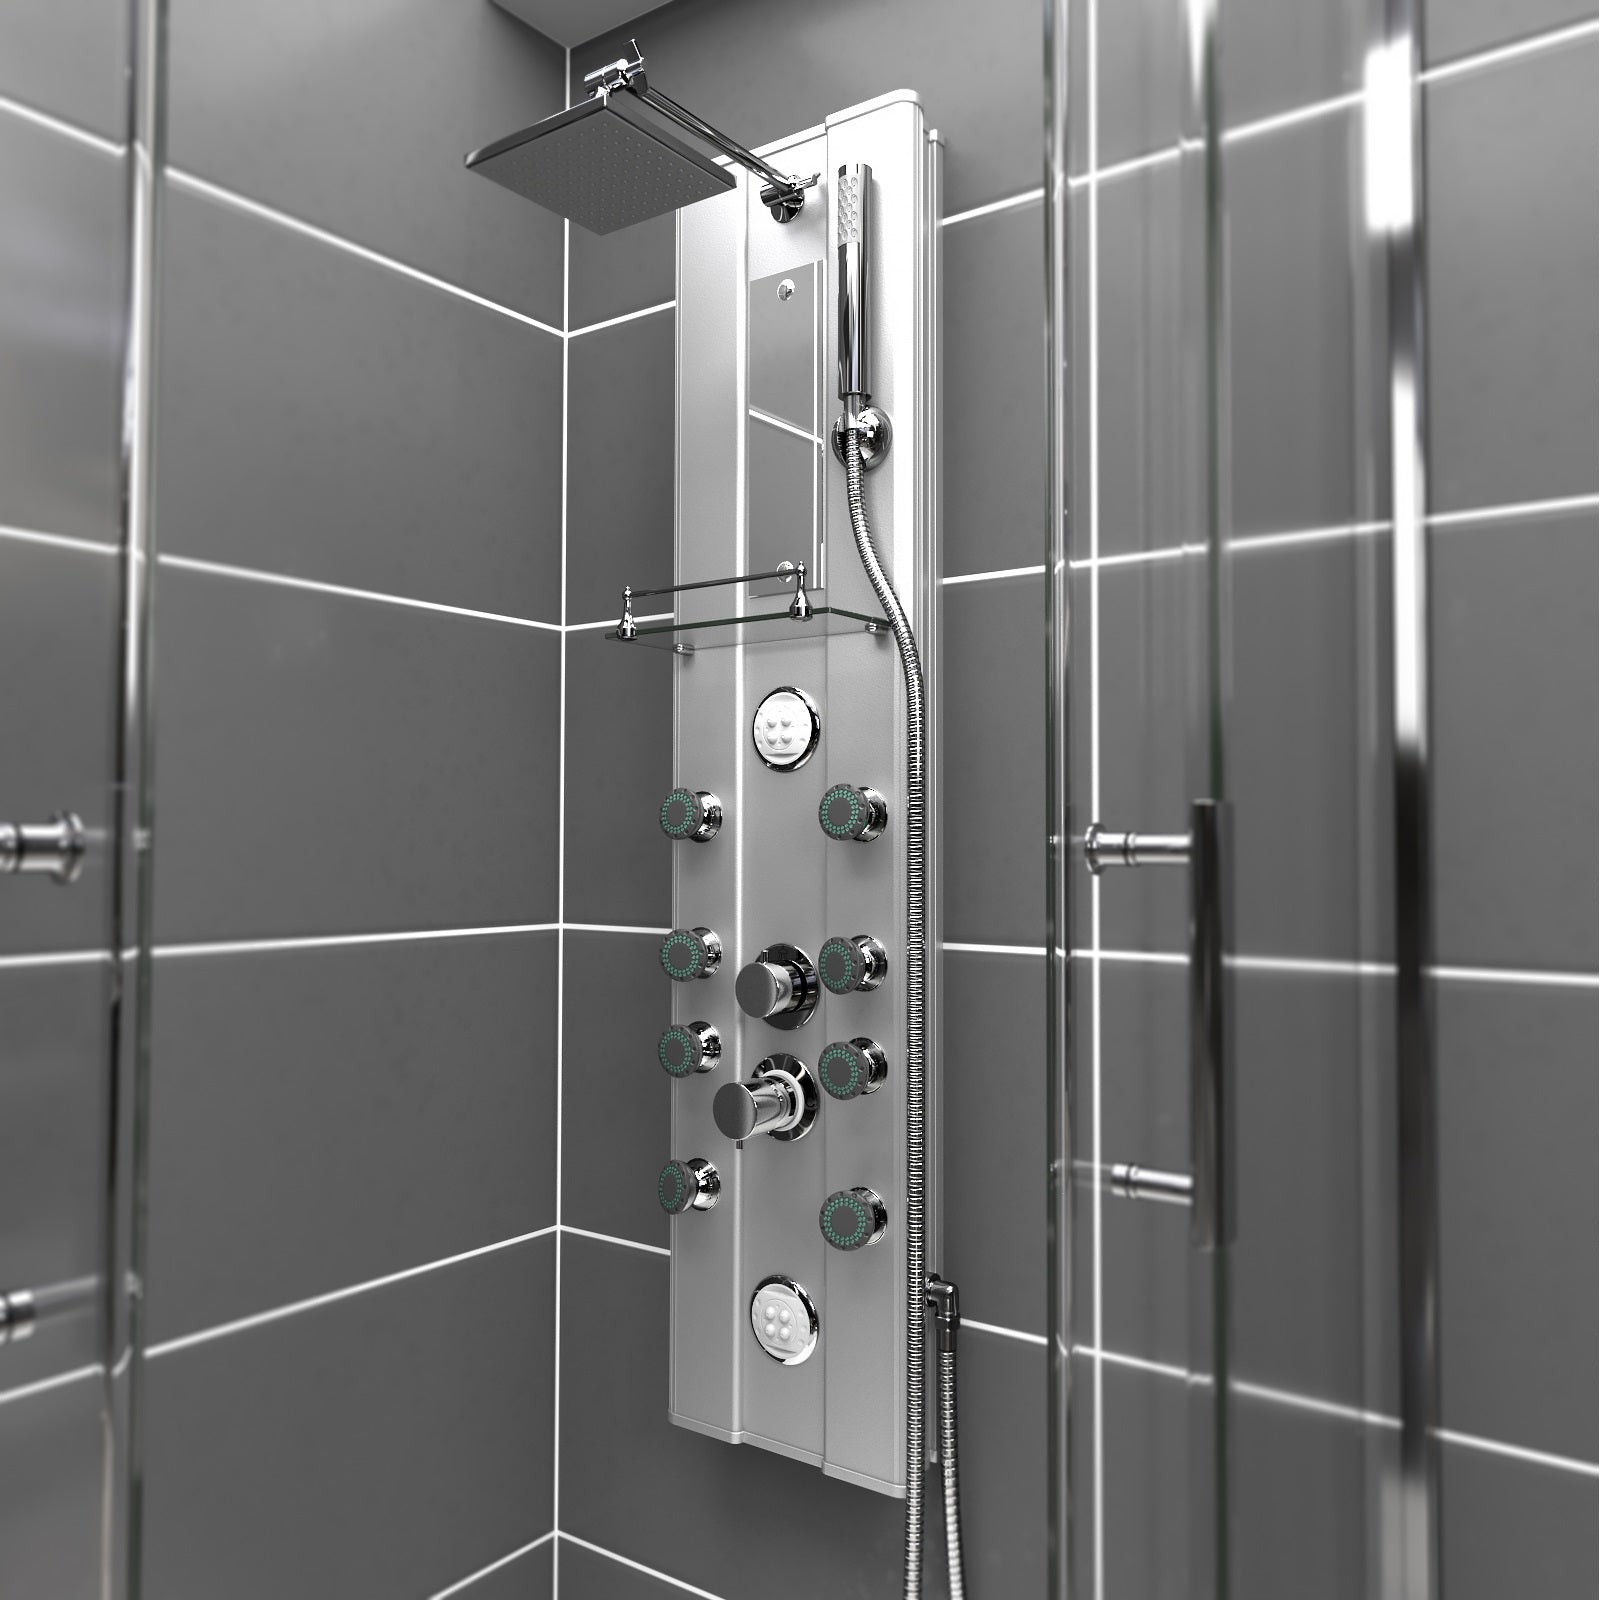 Shower in style with this Stainless Shower Tower Panel with Body Jets!